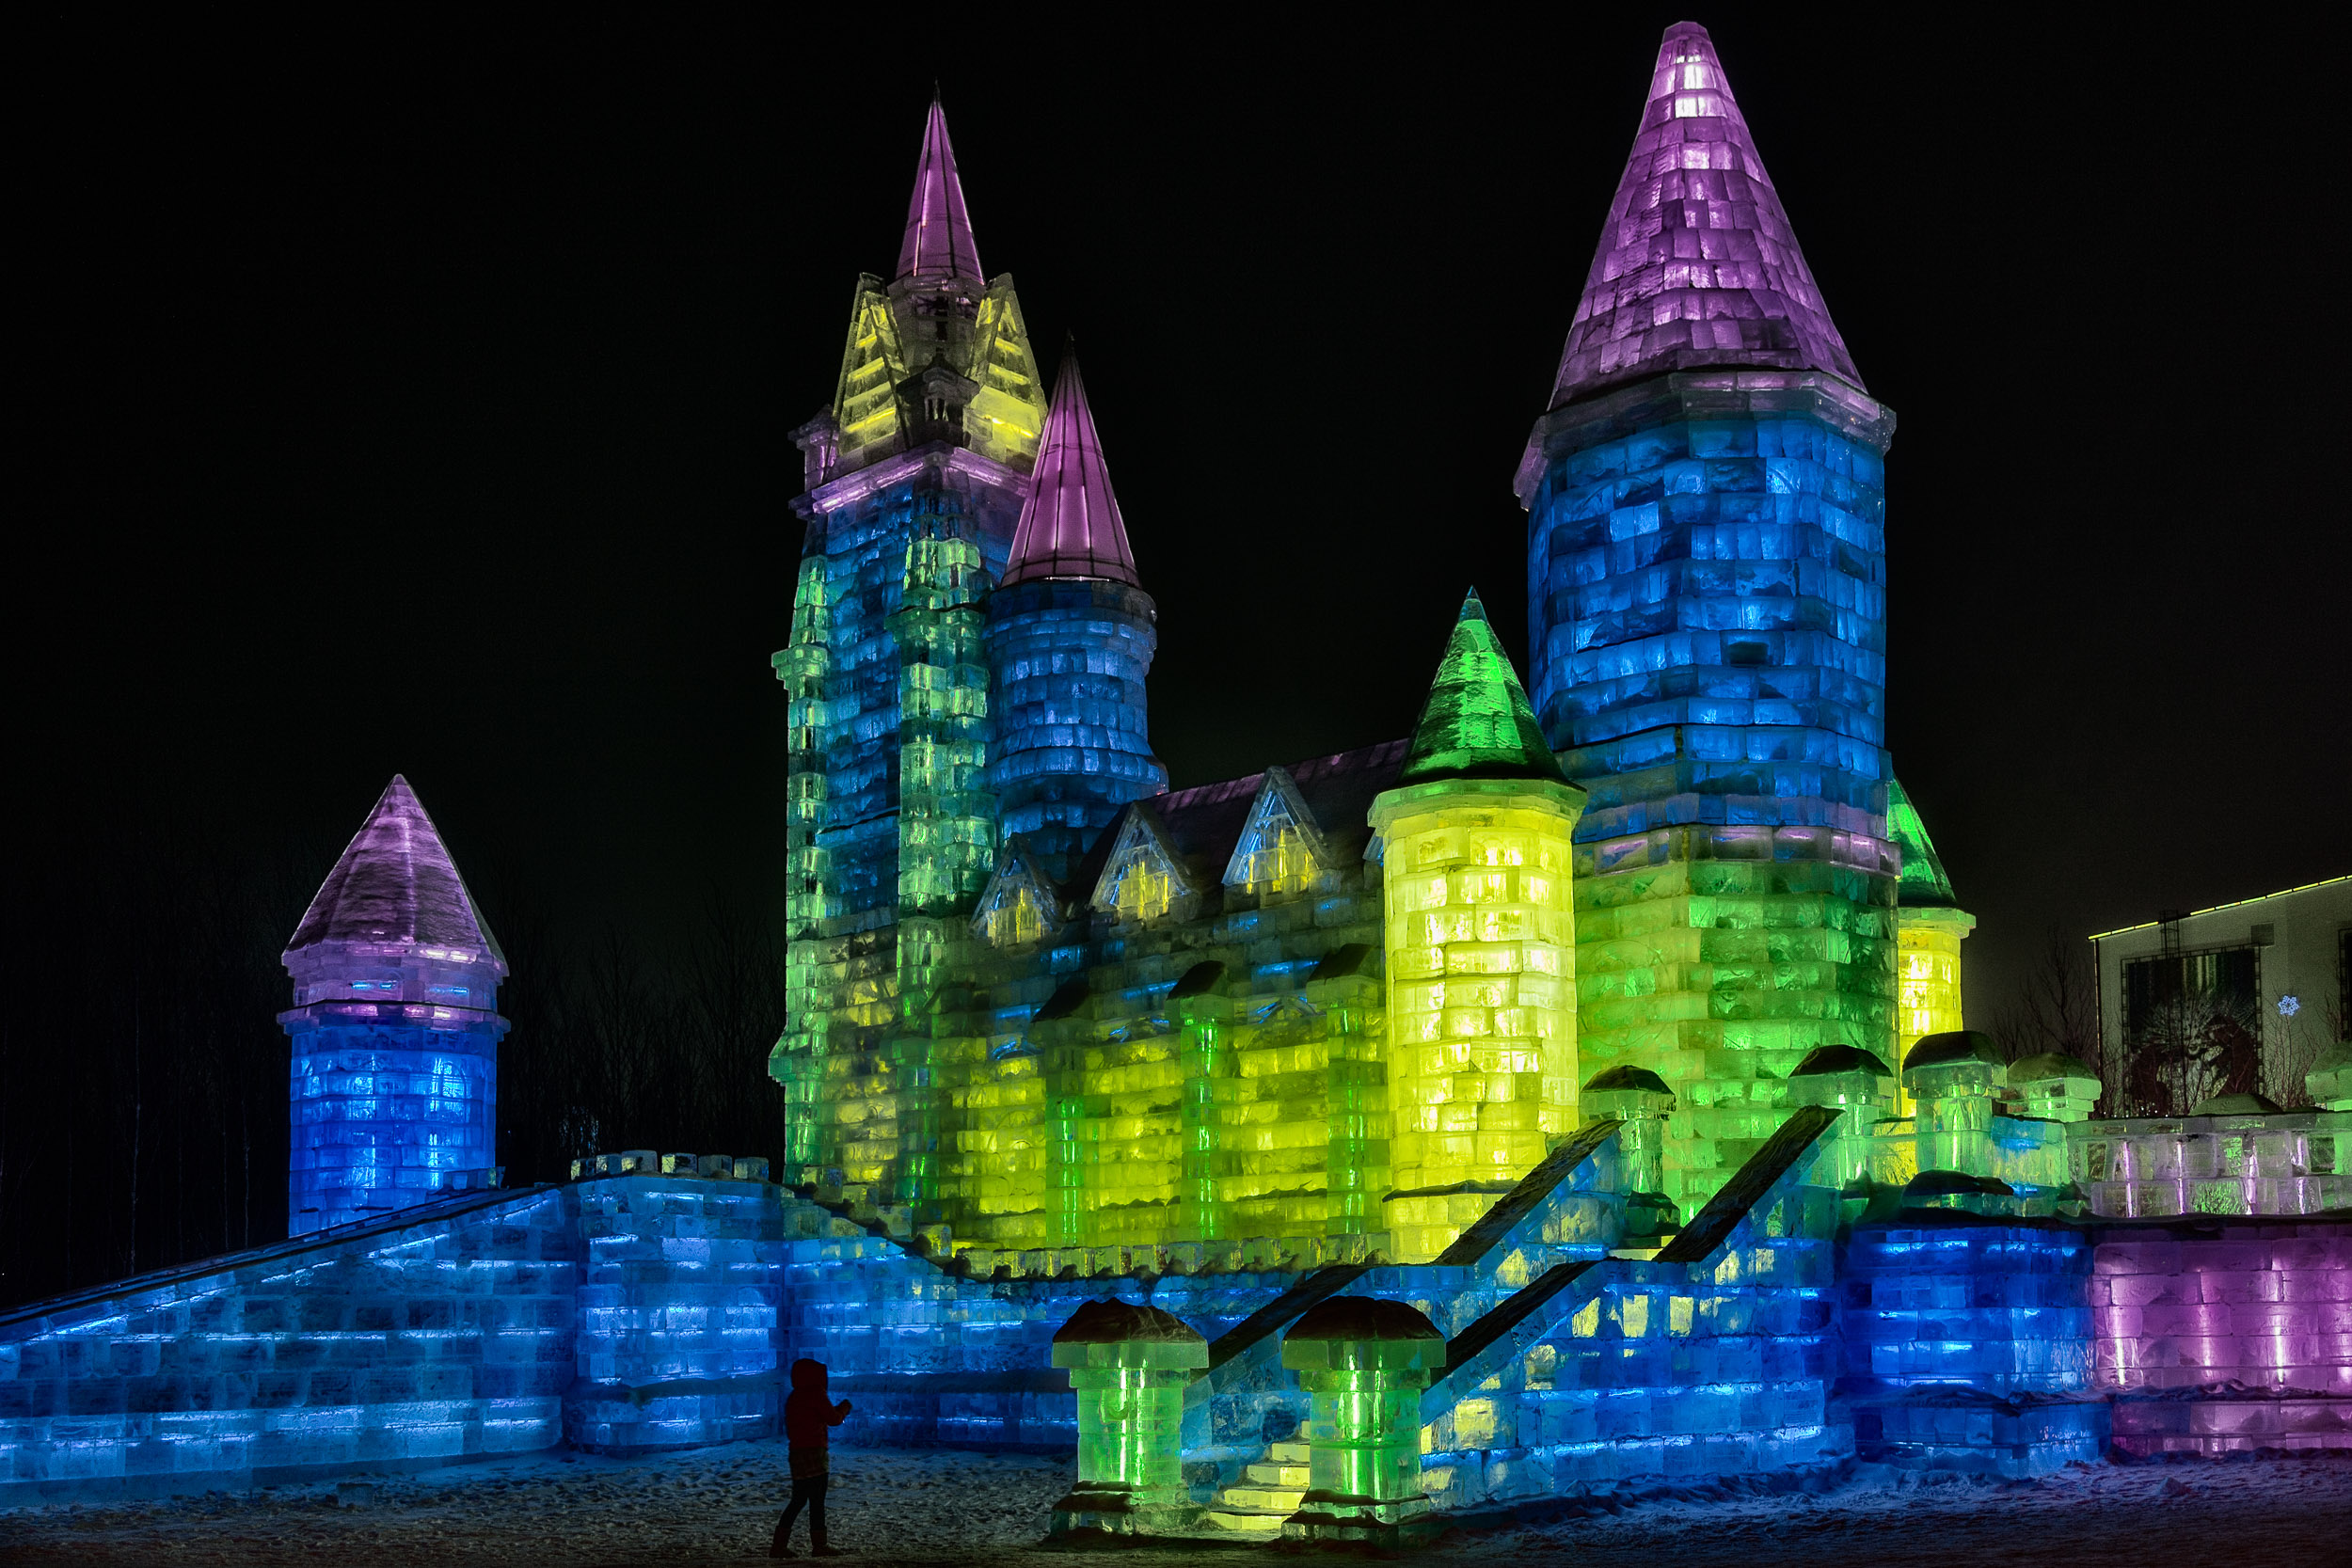 A magical and somewhat kitsch    castle   , made of ice and illuminated at night, at    IceWorld    in    Harbin, China   .